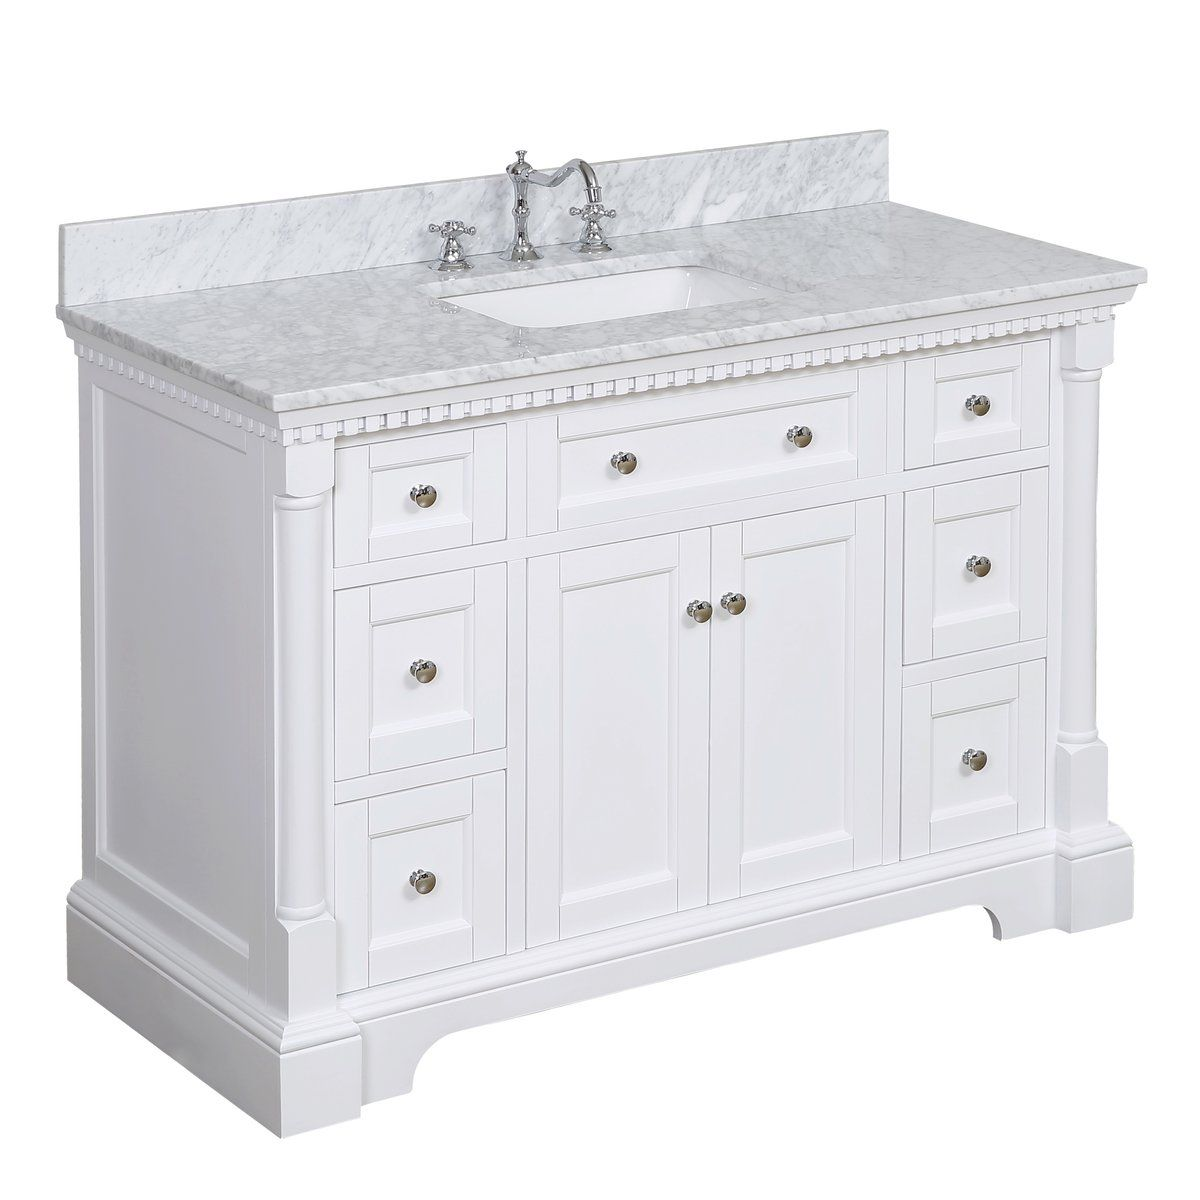 Sydney 48 Inch Vanity Carrara Marble In 2020 Luxury Bathroom